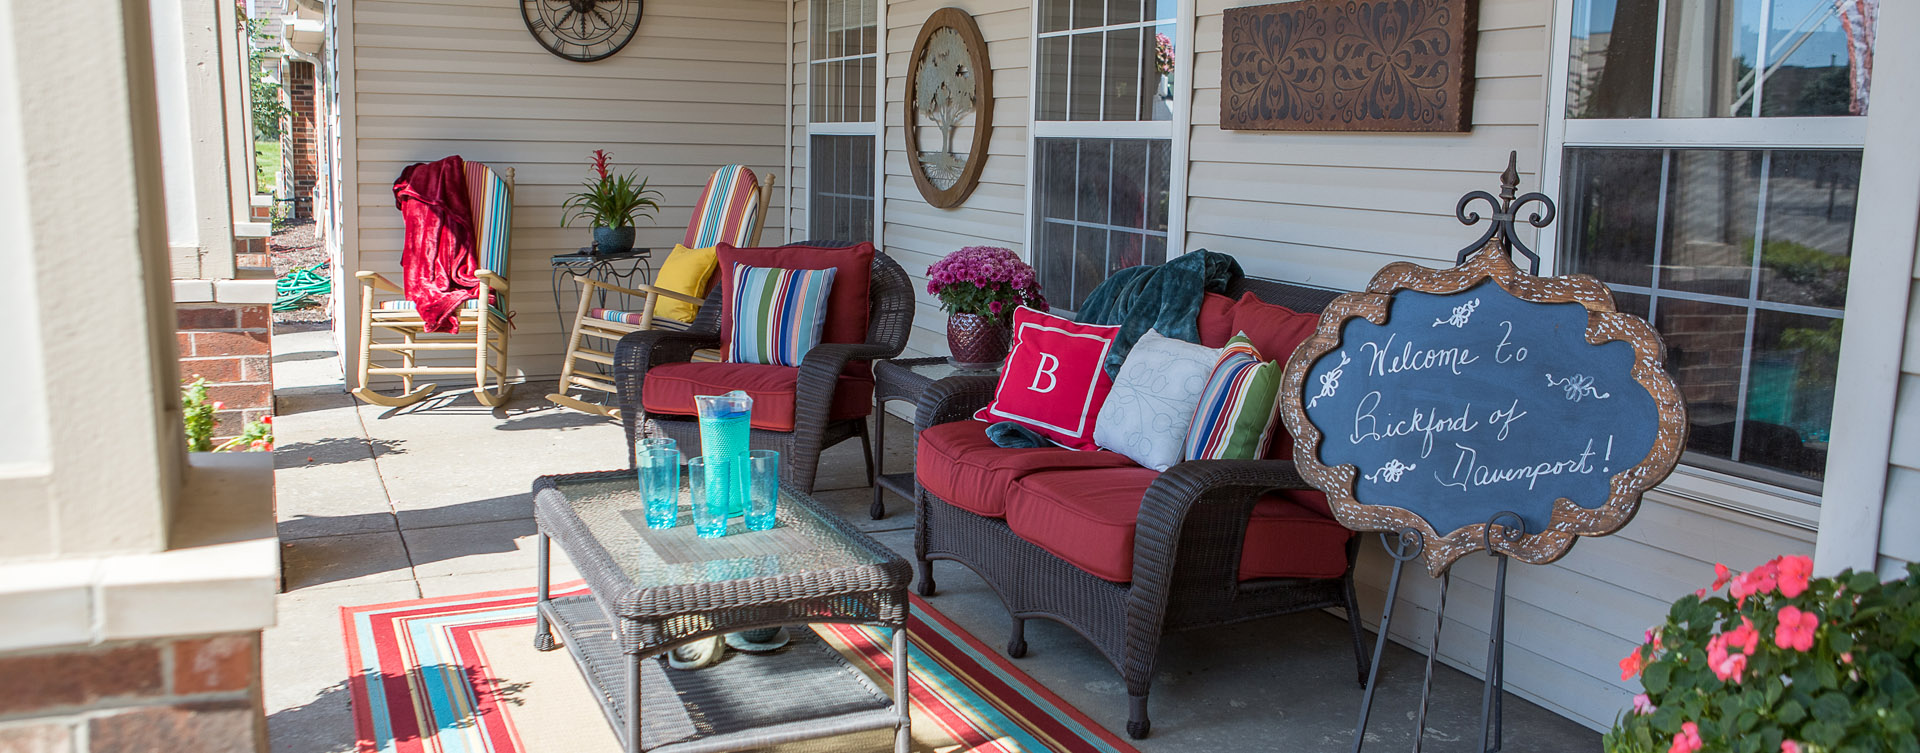 Sip on your favorite drink on the porch at Bickford of Davenport